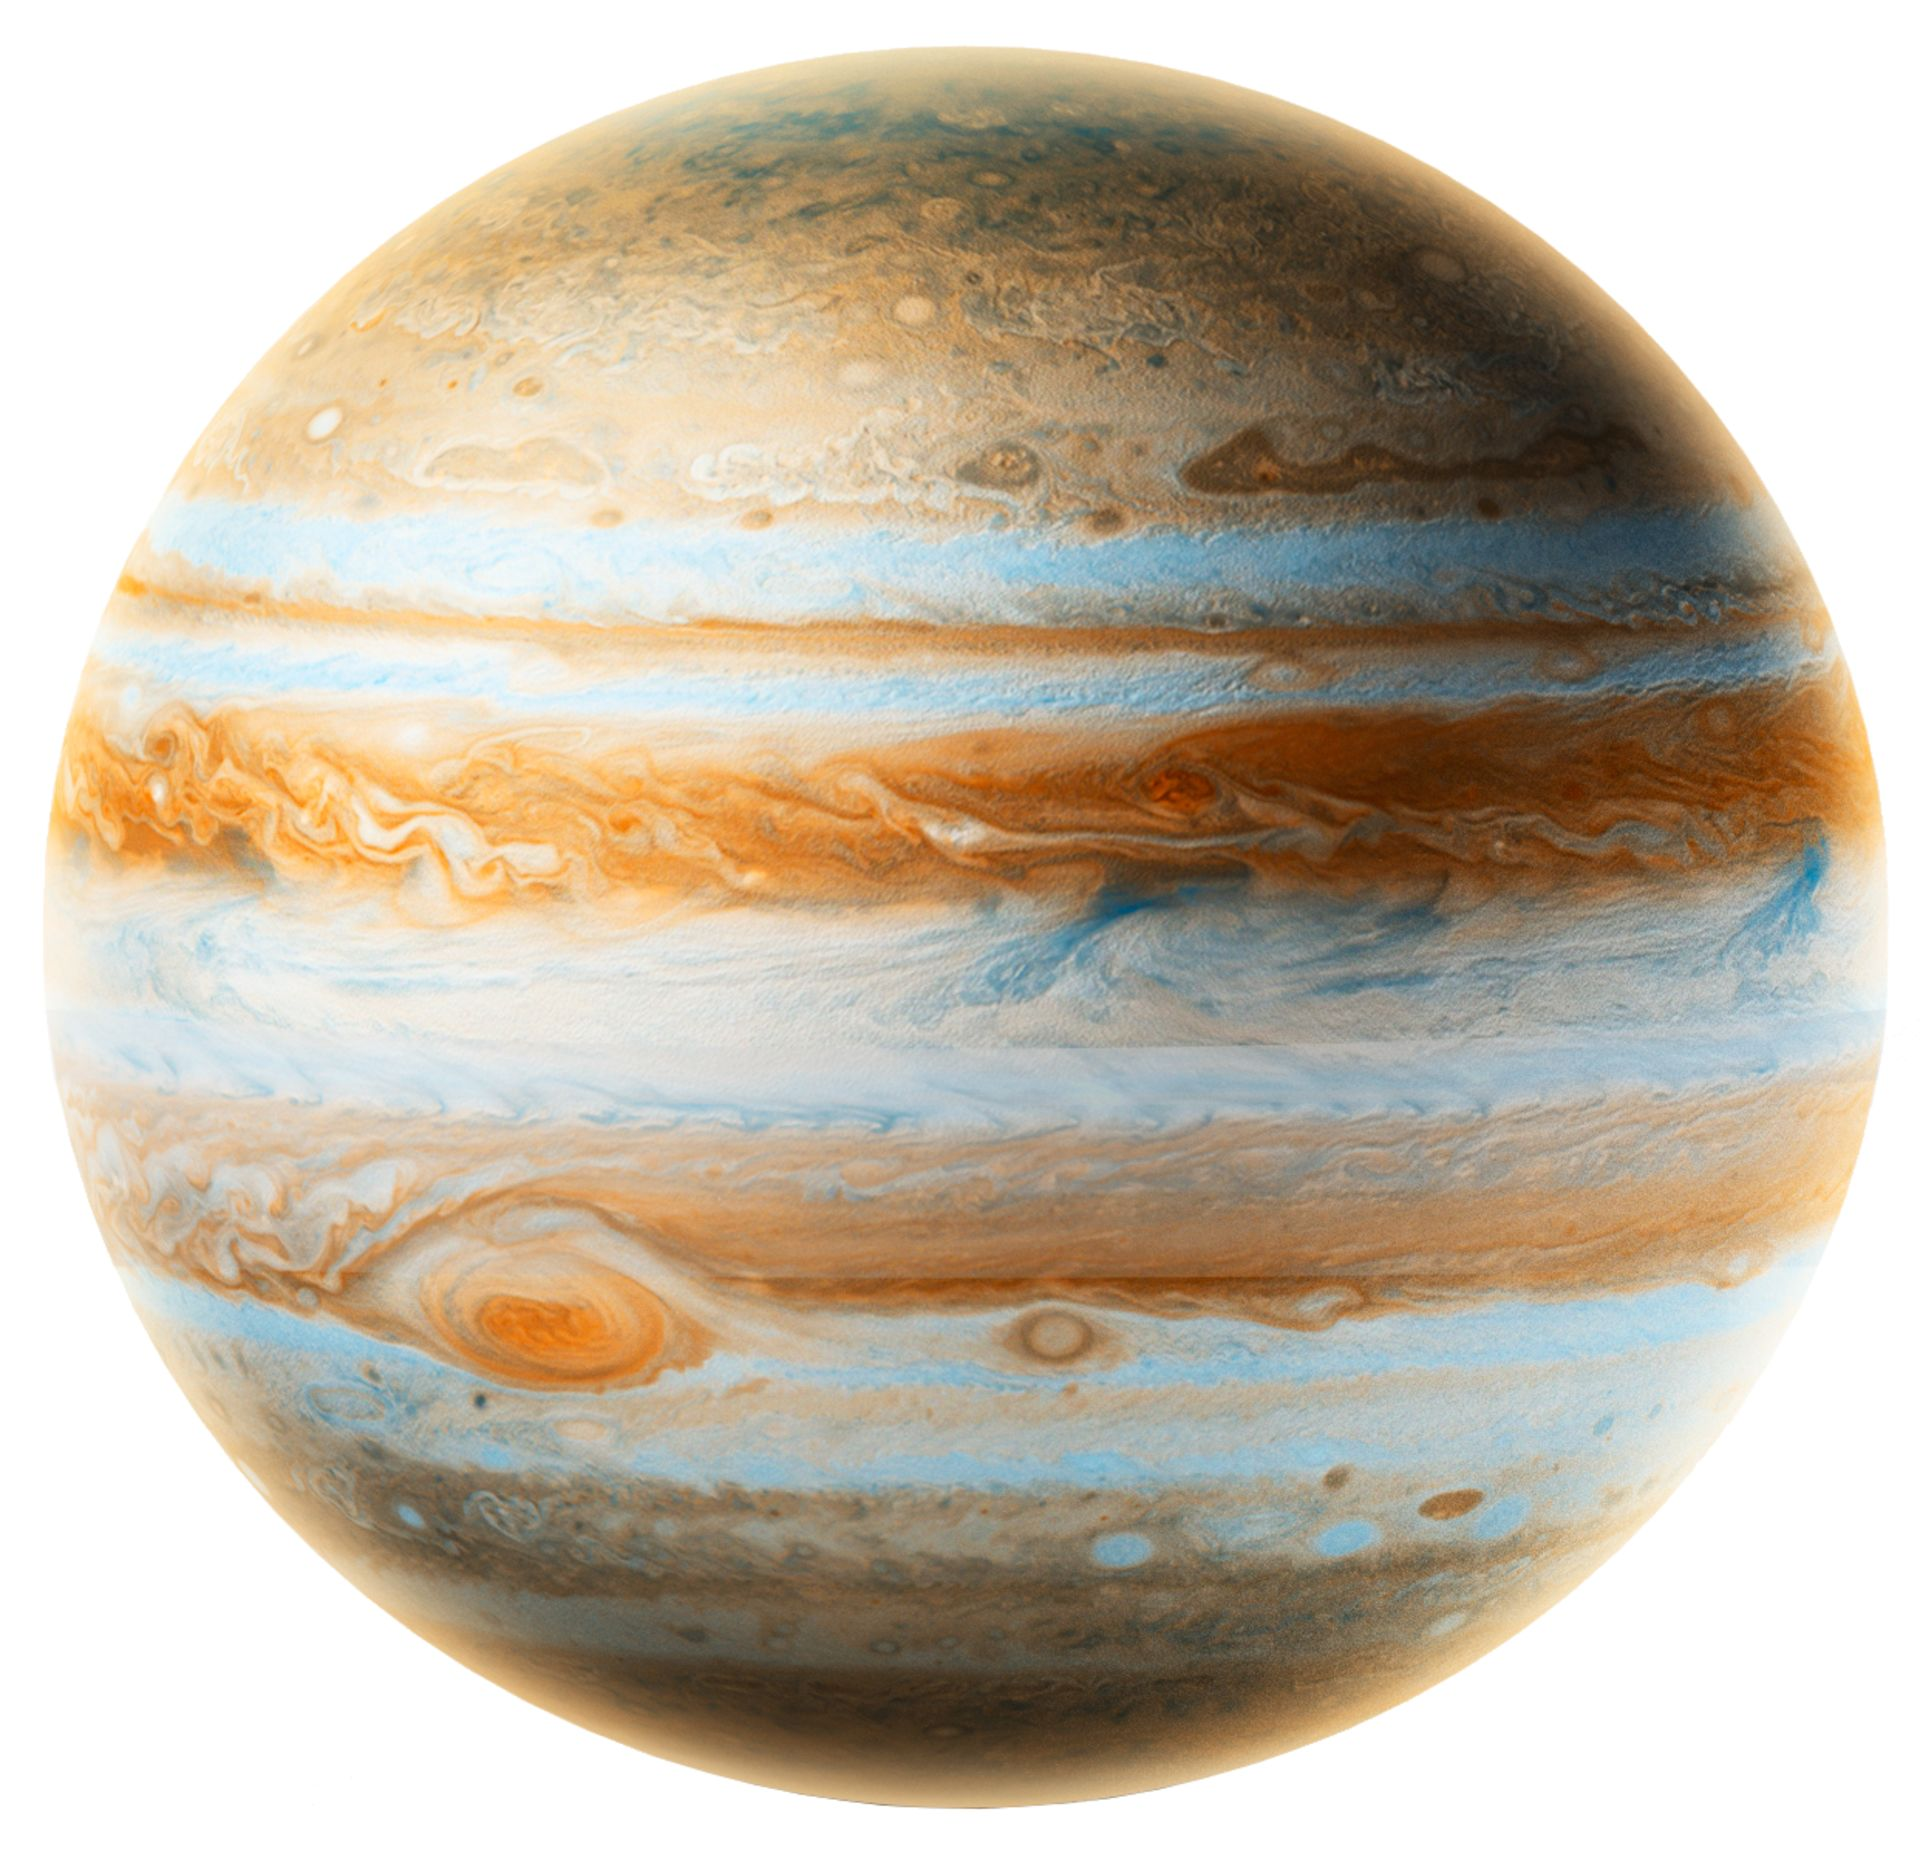 planet jupiter information - HD 1200×1156